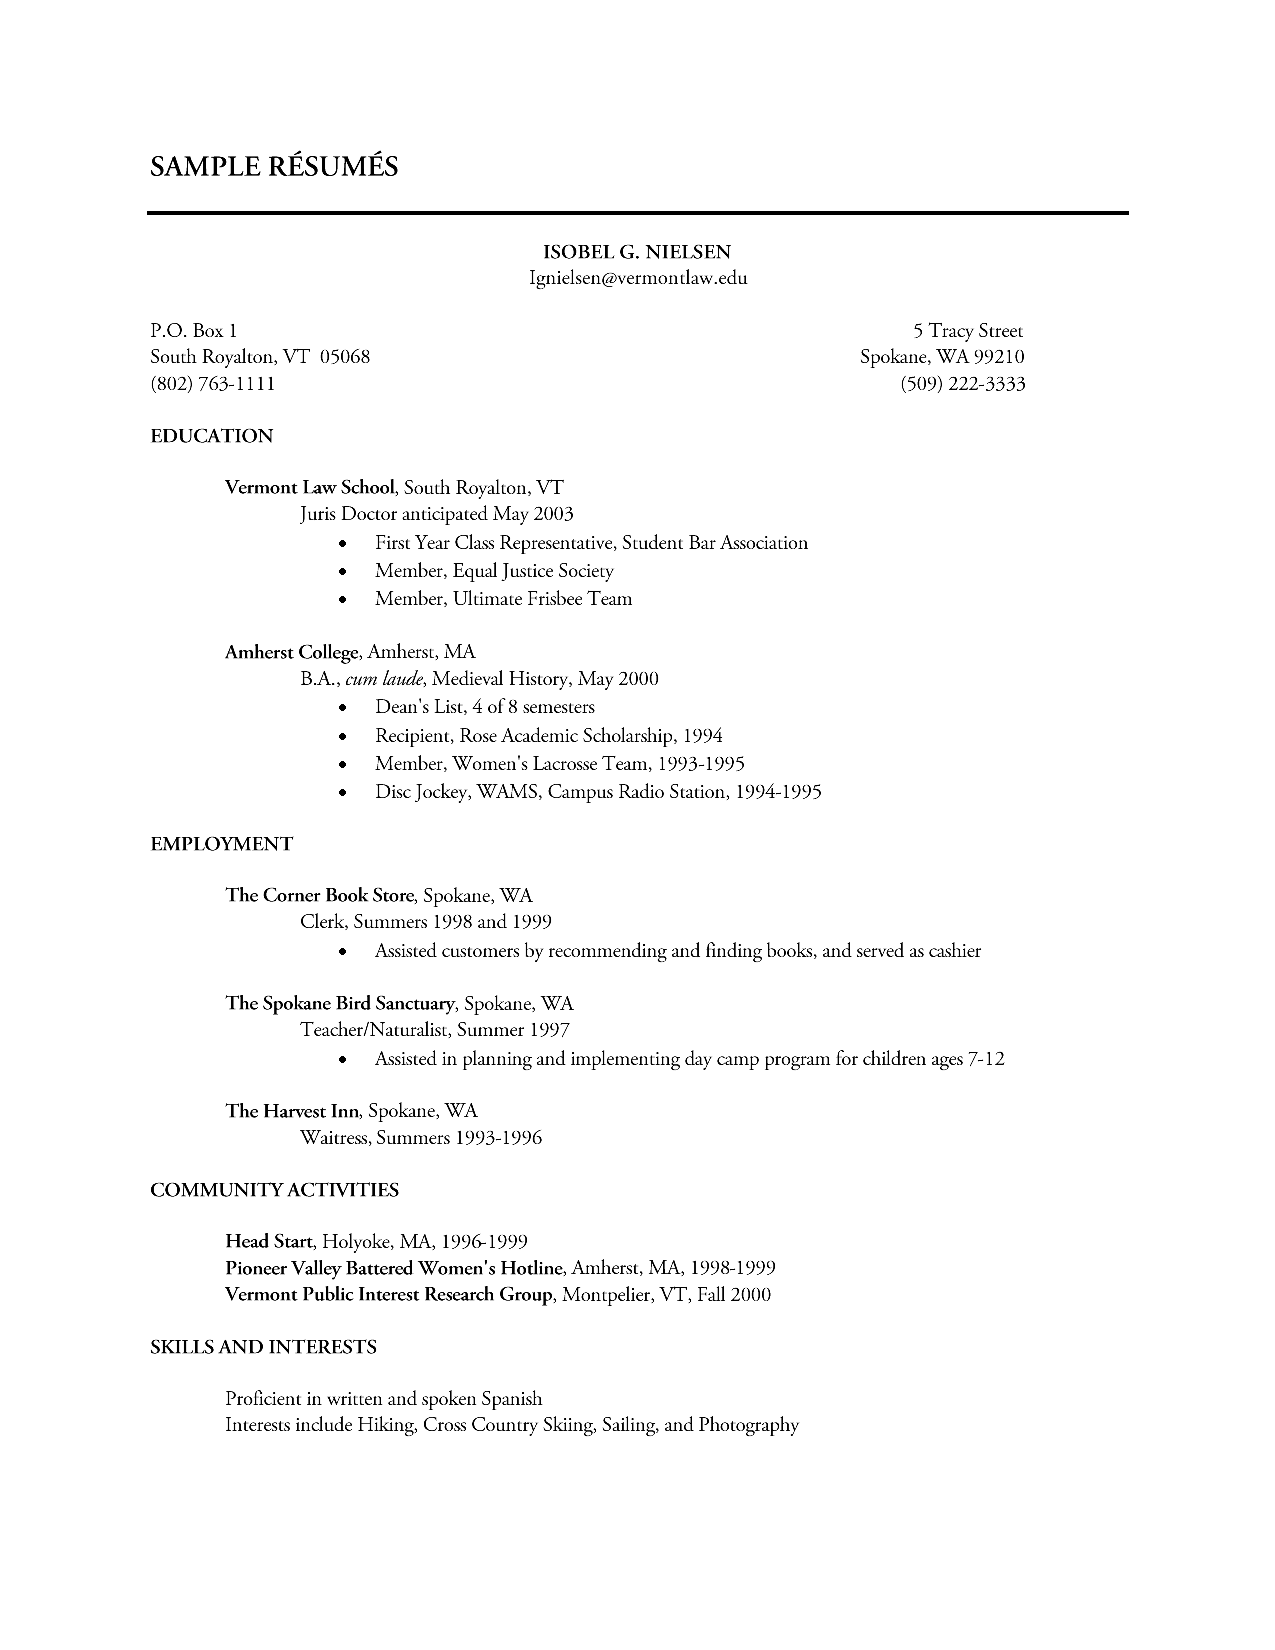 waitress assistant personal trainer resume resume example - Sample Resume Waitress